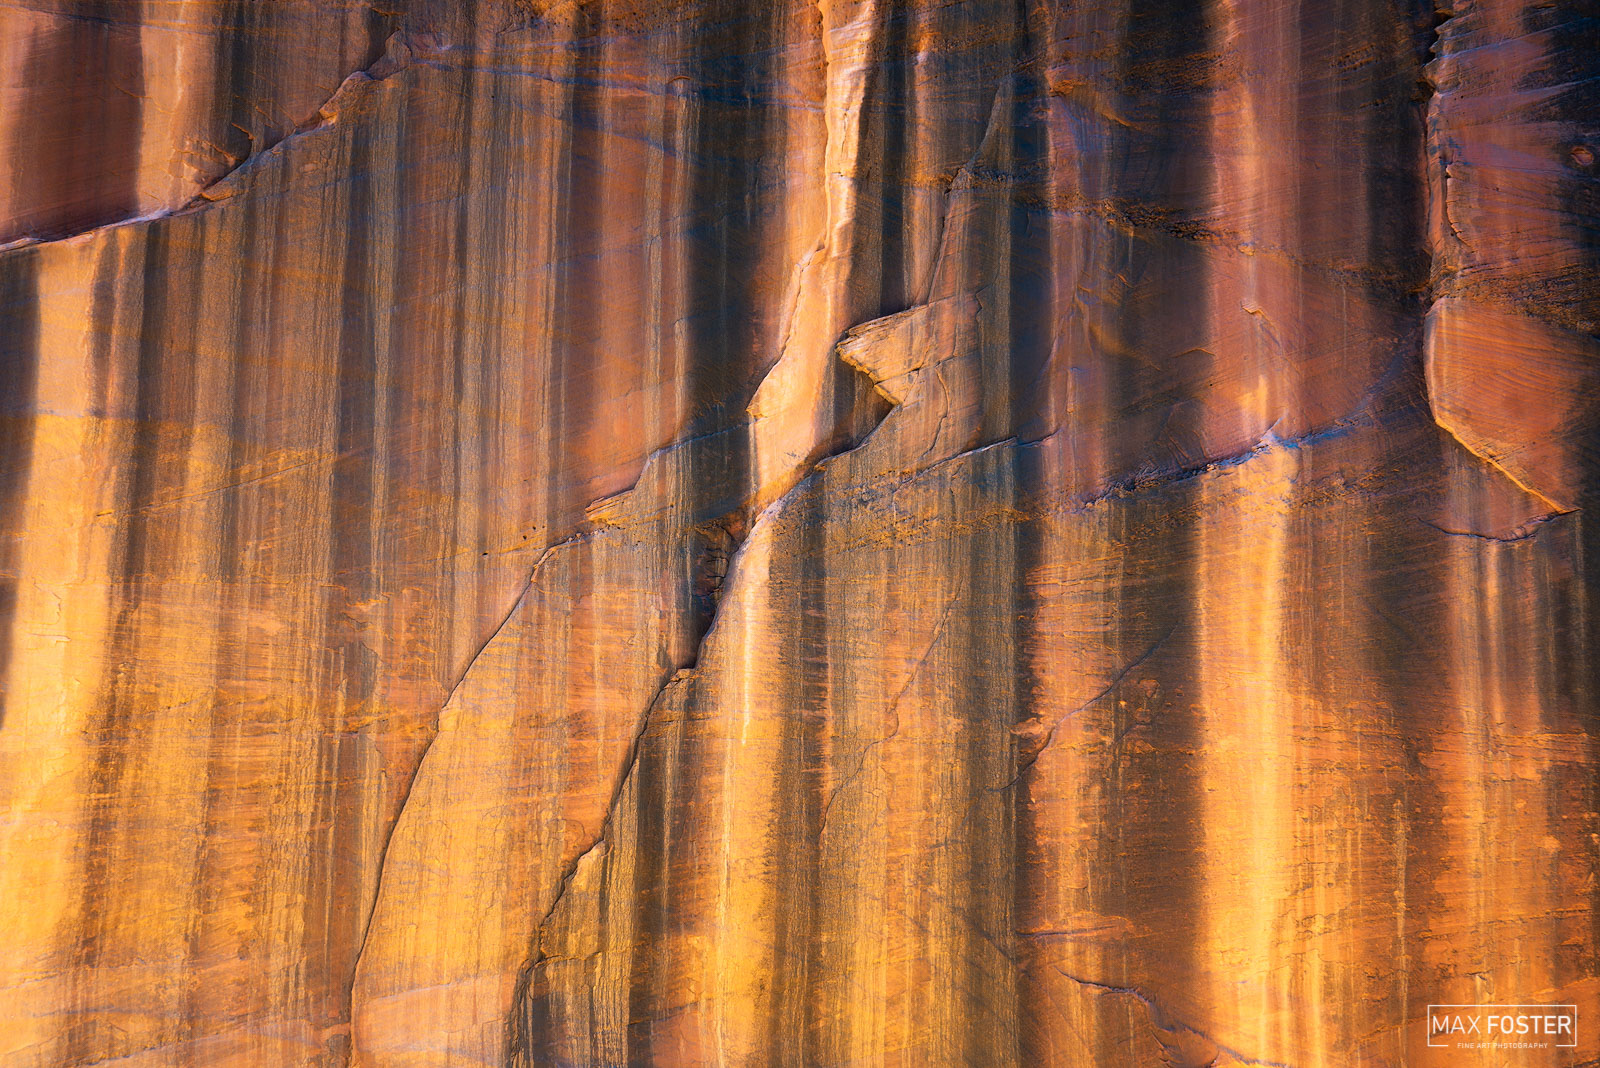 Fine Art Limited Edition of 50 The Buckskin Gulch, a canyon in southern Utah, is one of the main tributaries of the Paria River...